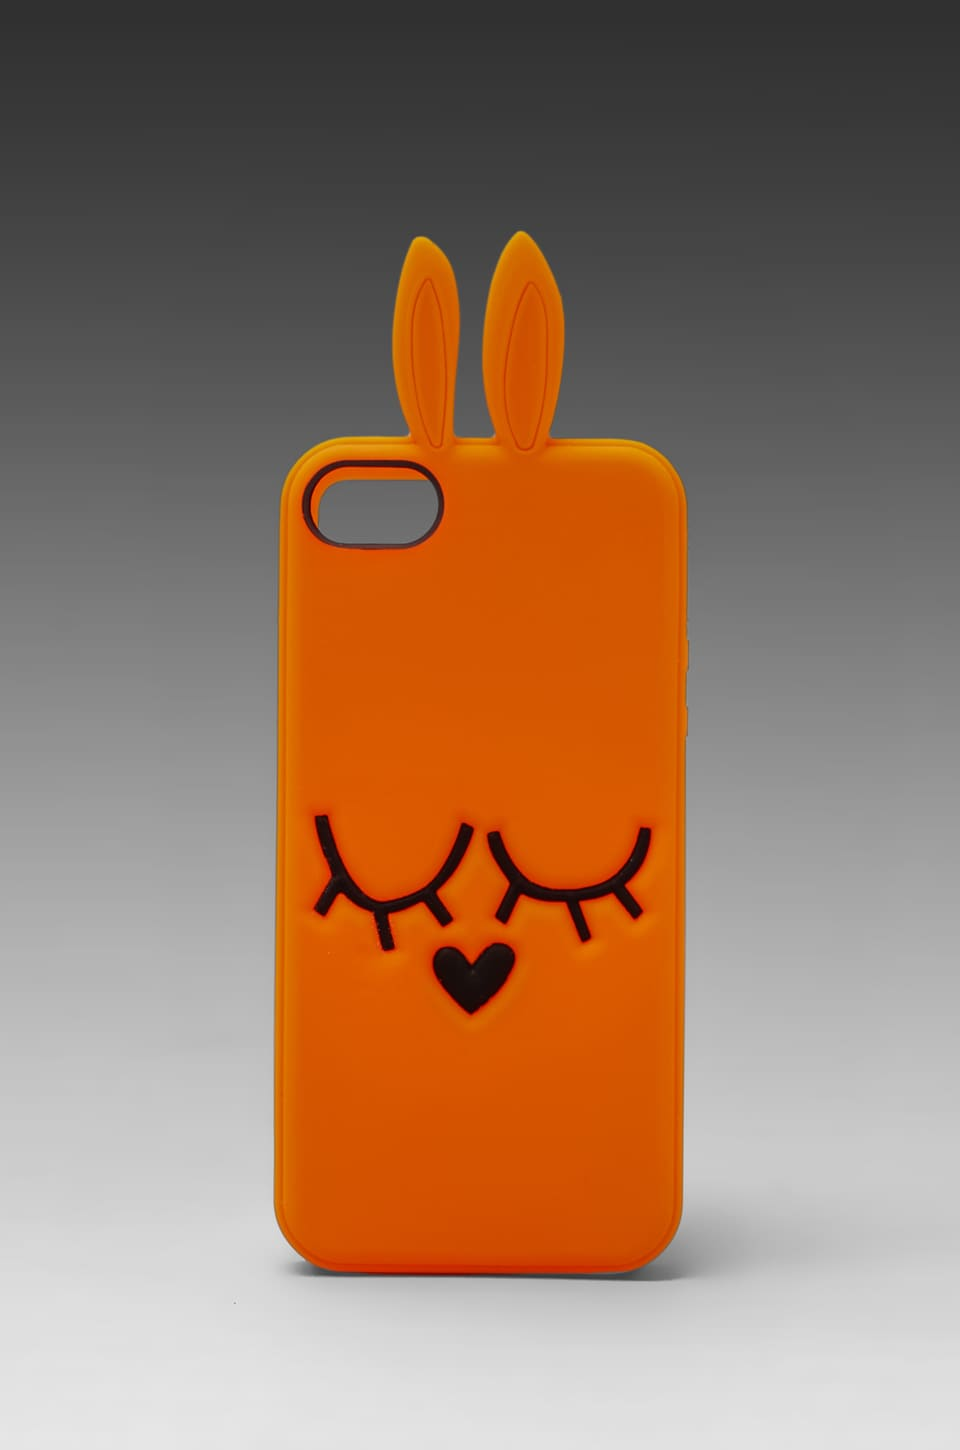 Marc by Marc Jacobs Katie Bunny Animal Phone Case in Flourange